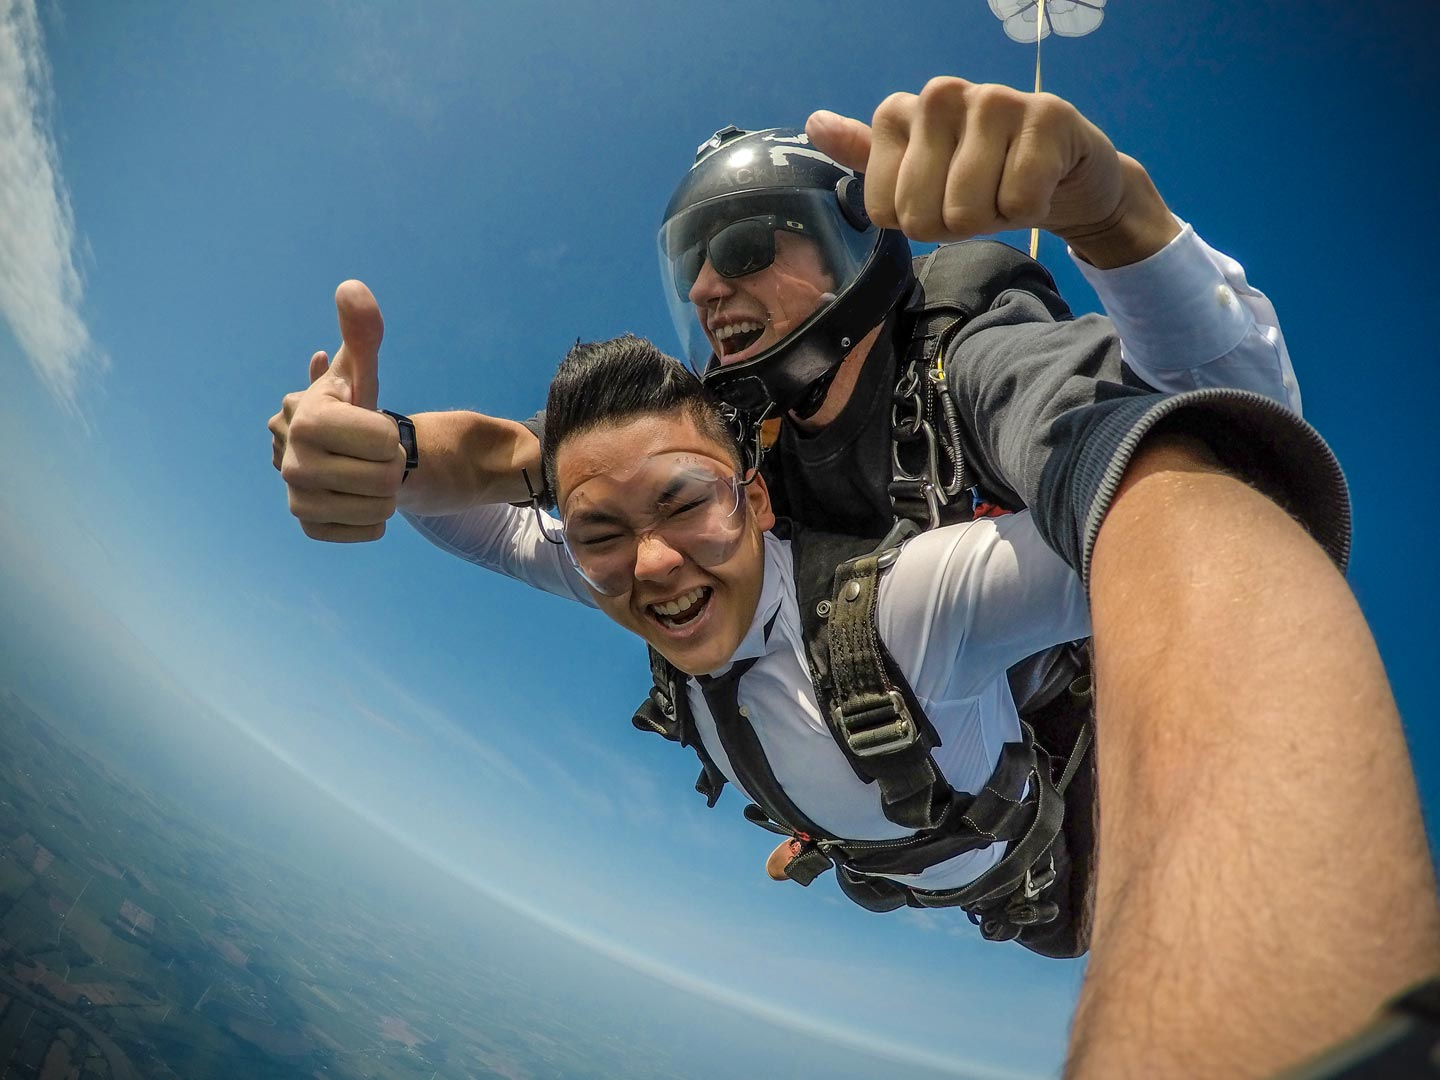 How To Download Skydive Video and Photos